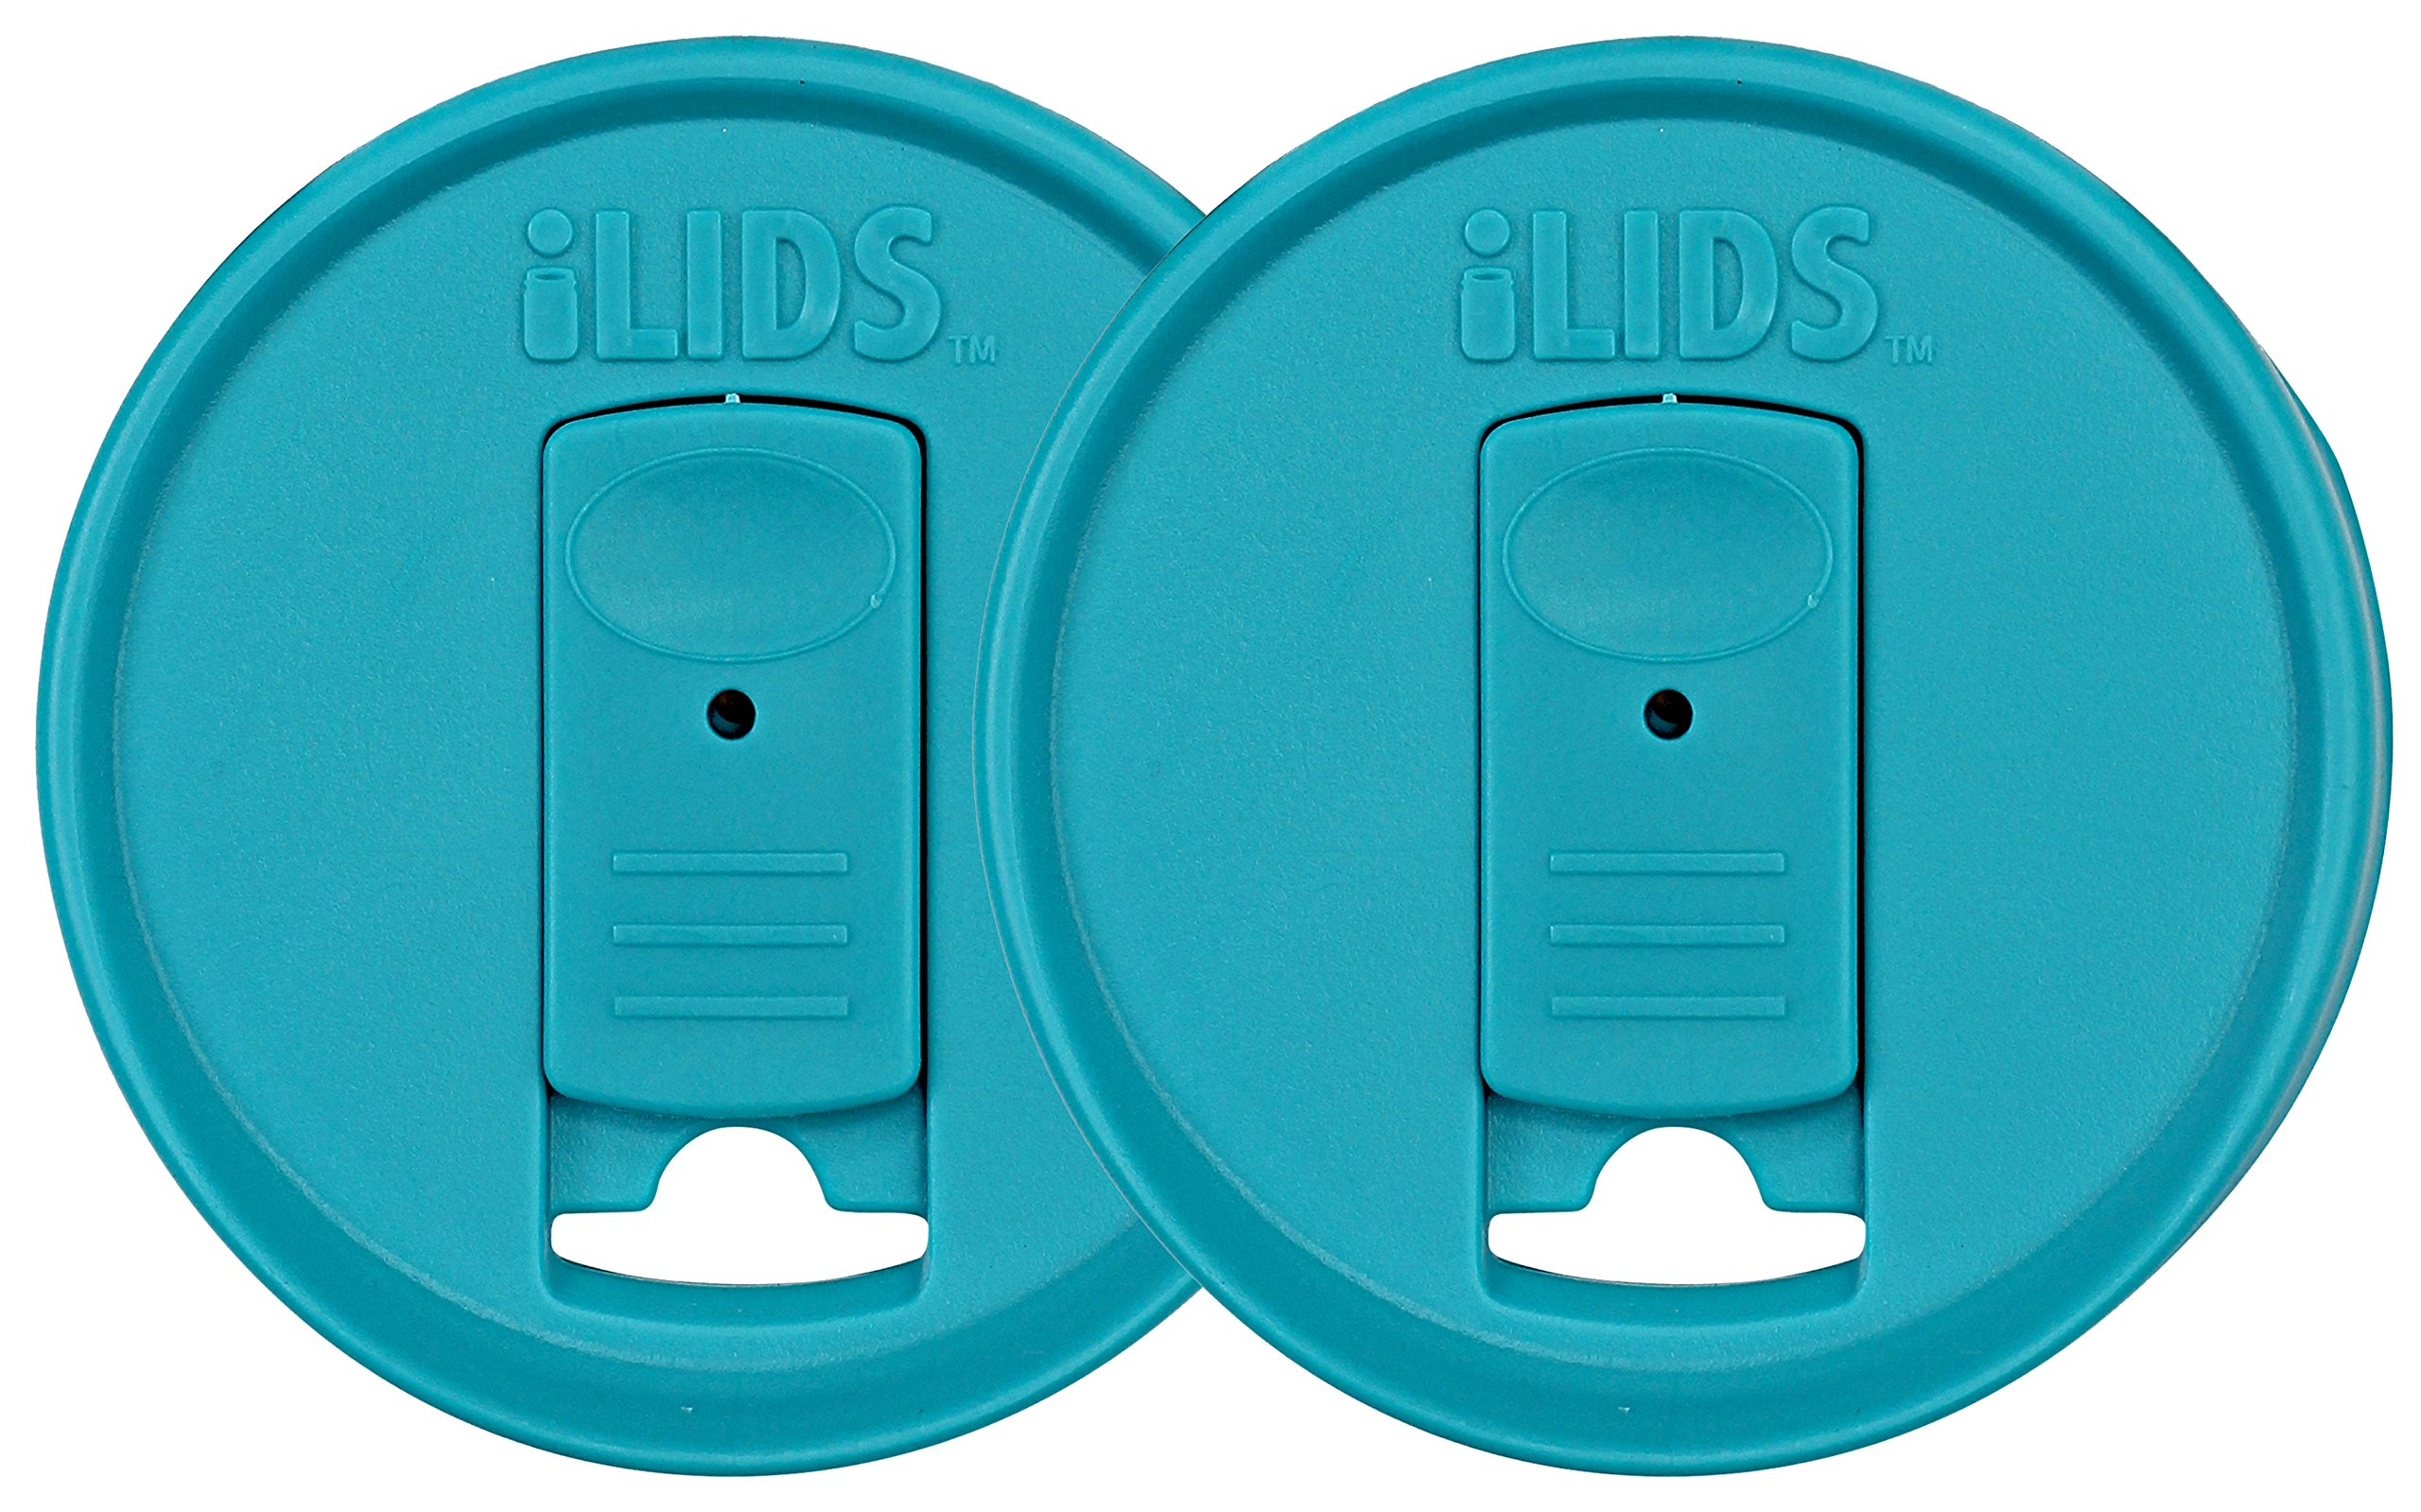 iLIDS Mason Jar Drink Lid, Regular Mouth, BPA Free, Made in the USA, Aqua Blue, 2-Pack